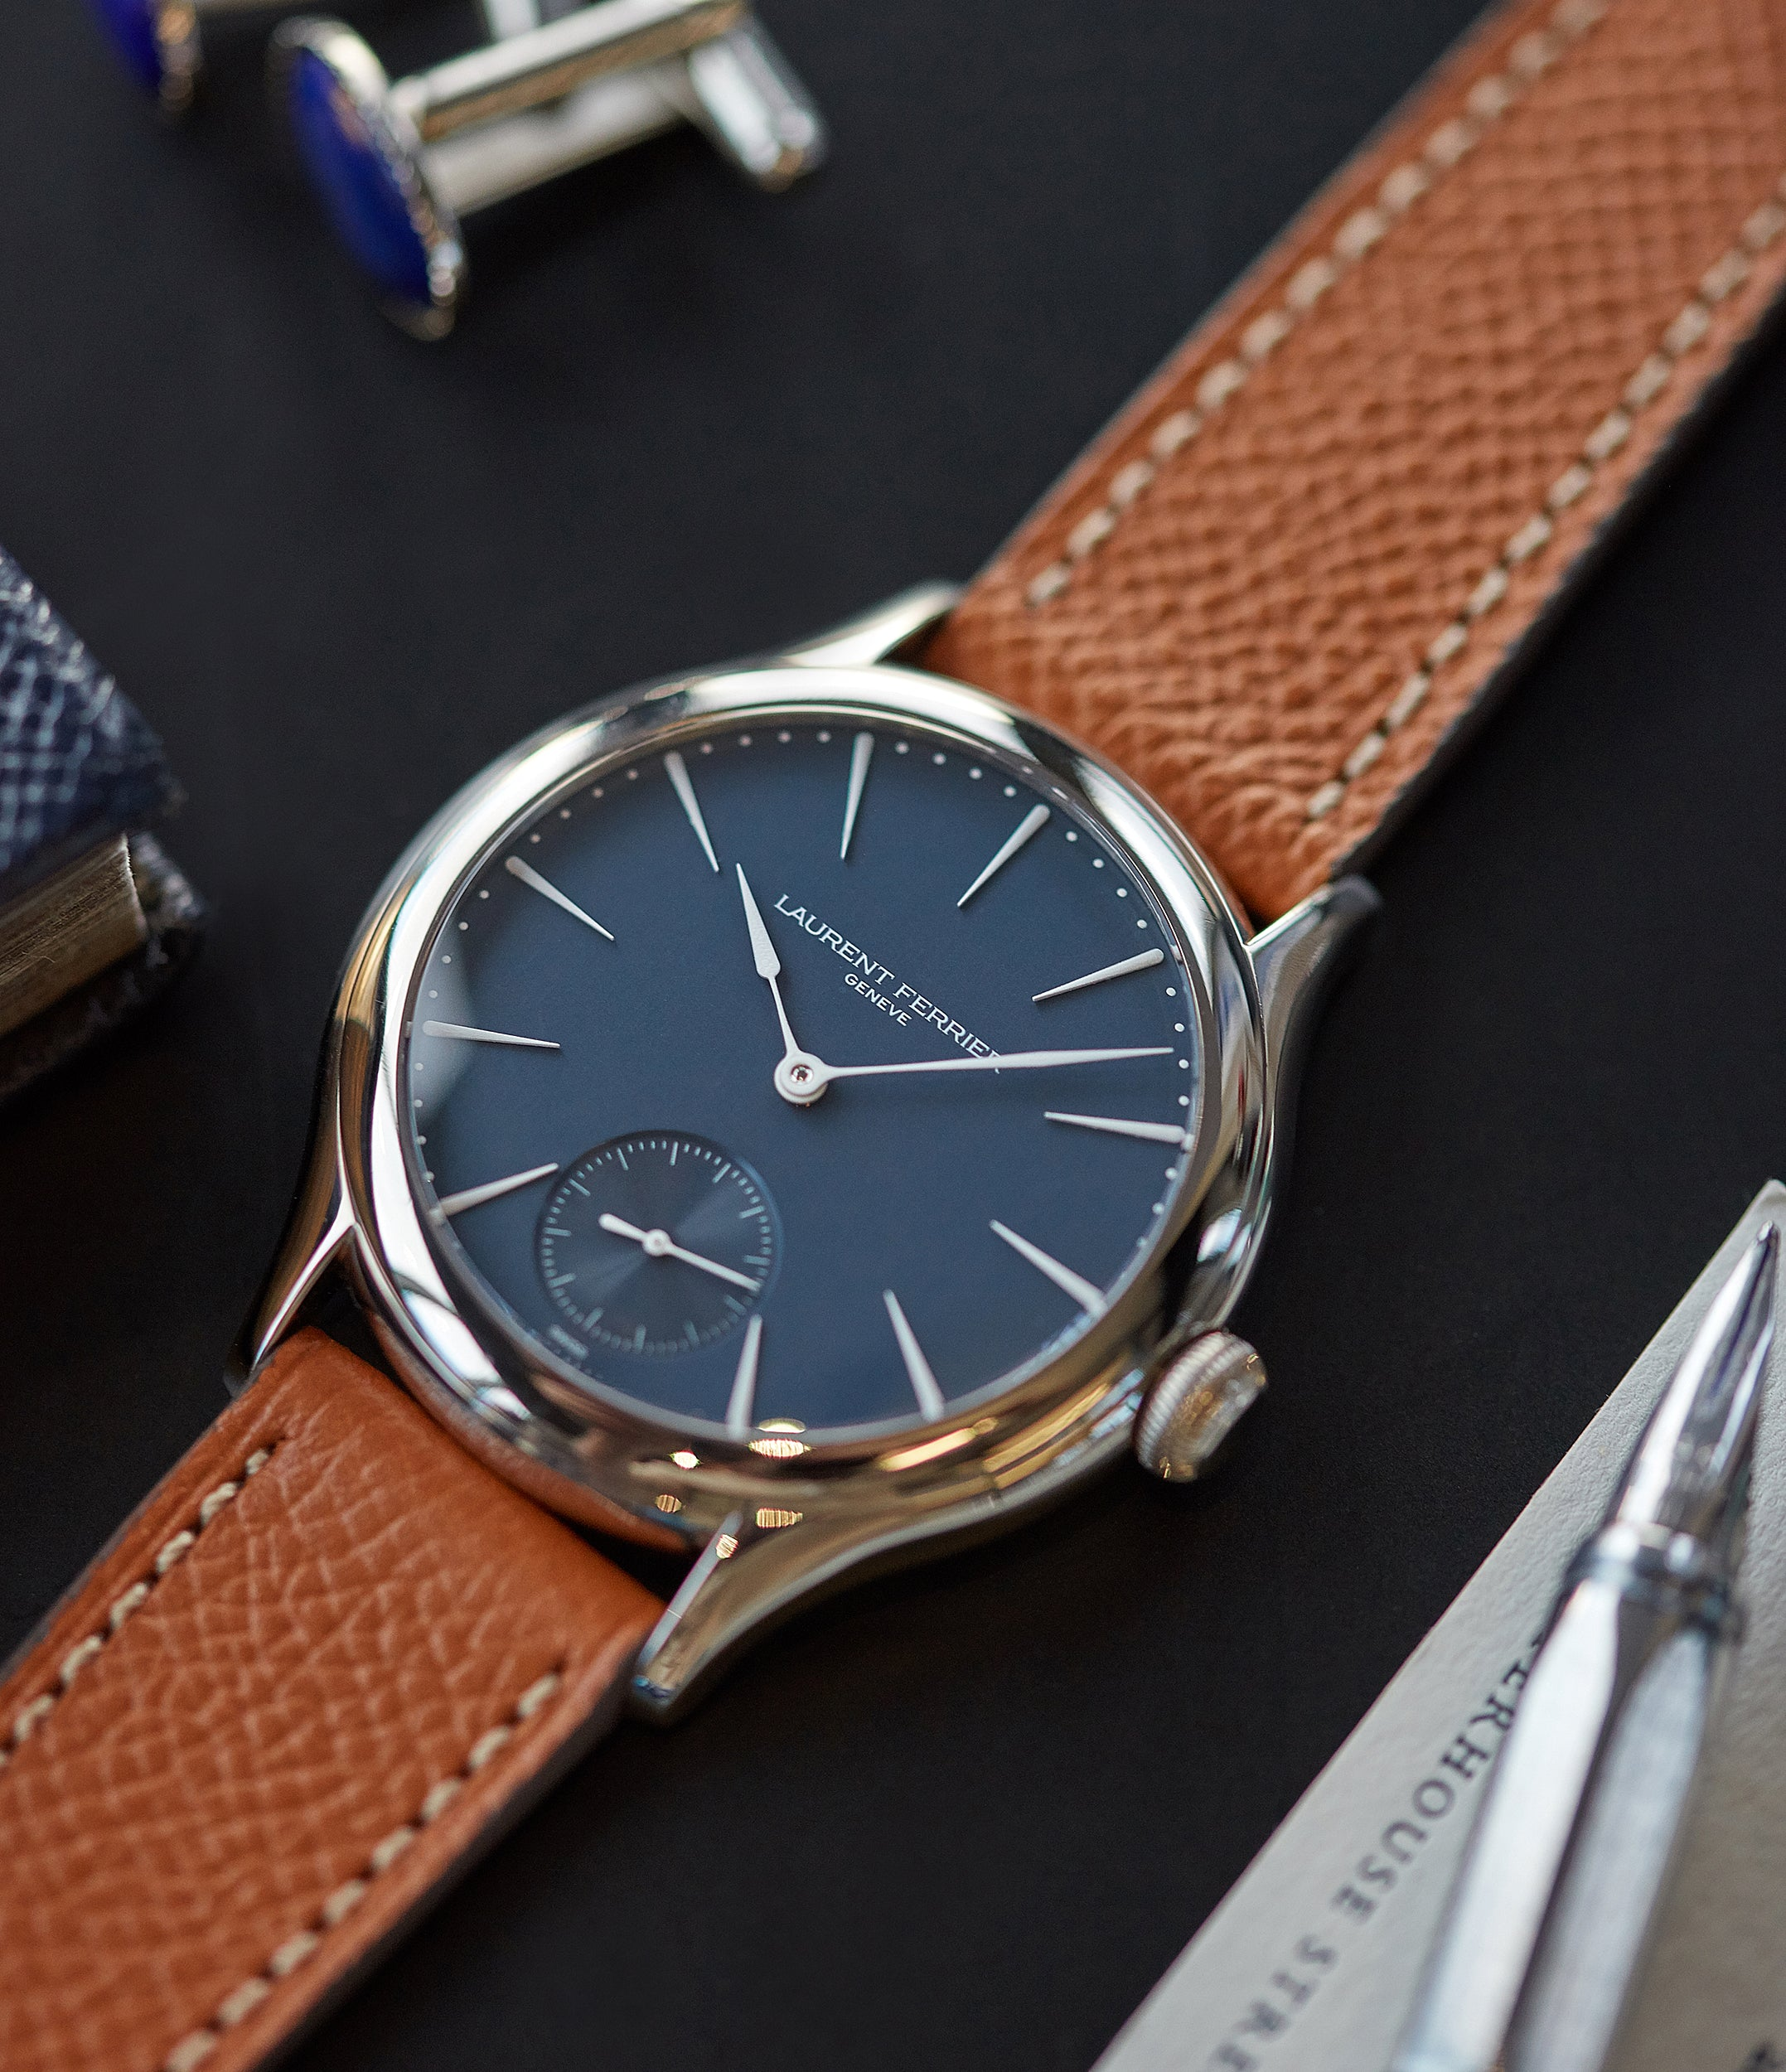 selling Laurent Ferrier Galet Micro-Rotor LF229.01 blue dial white gold watch for sale online at A Collected Man London UK approved seller of independent watchmaker Laurent Ferrier